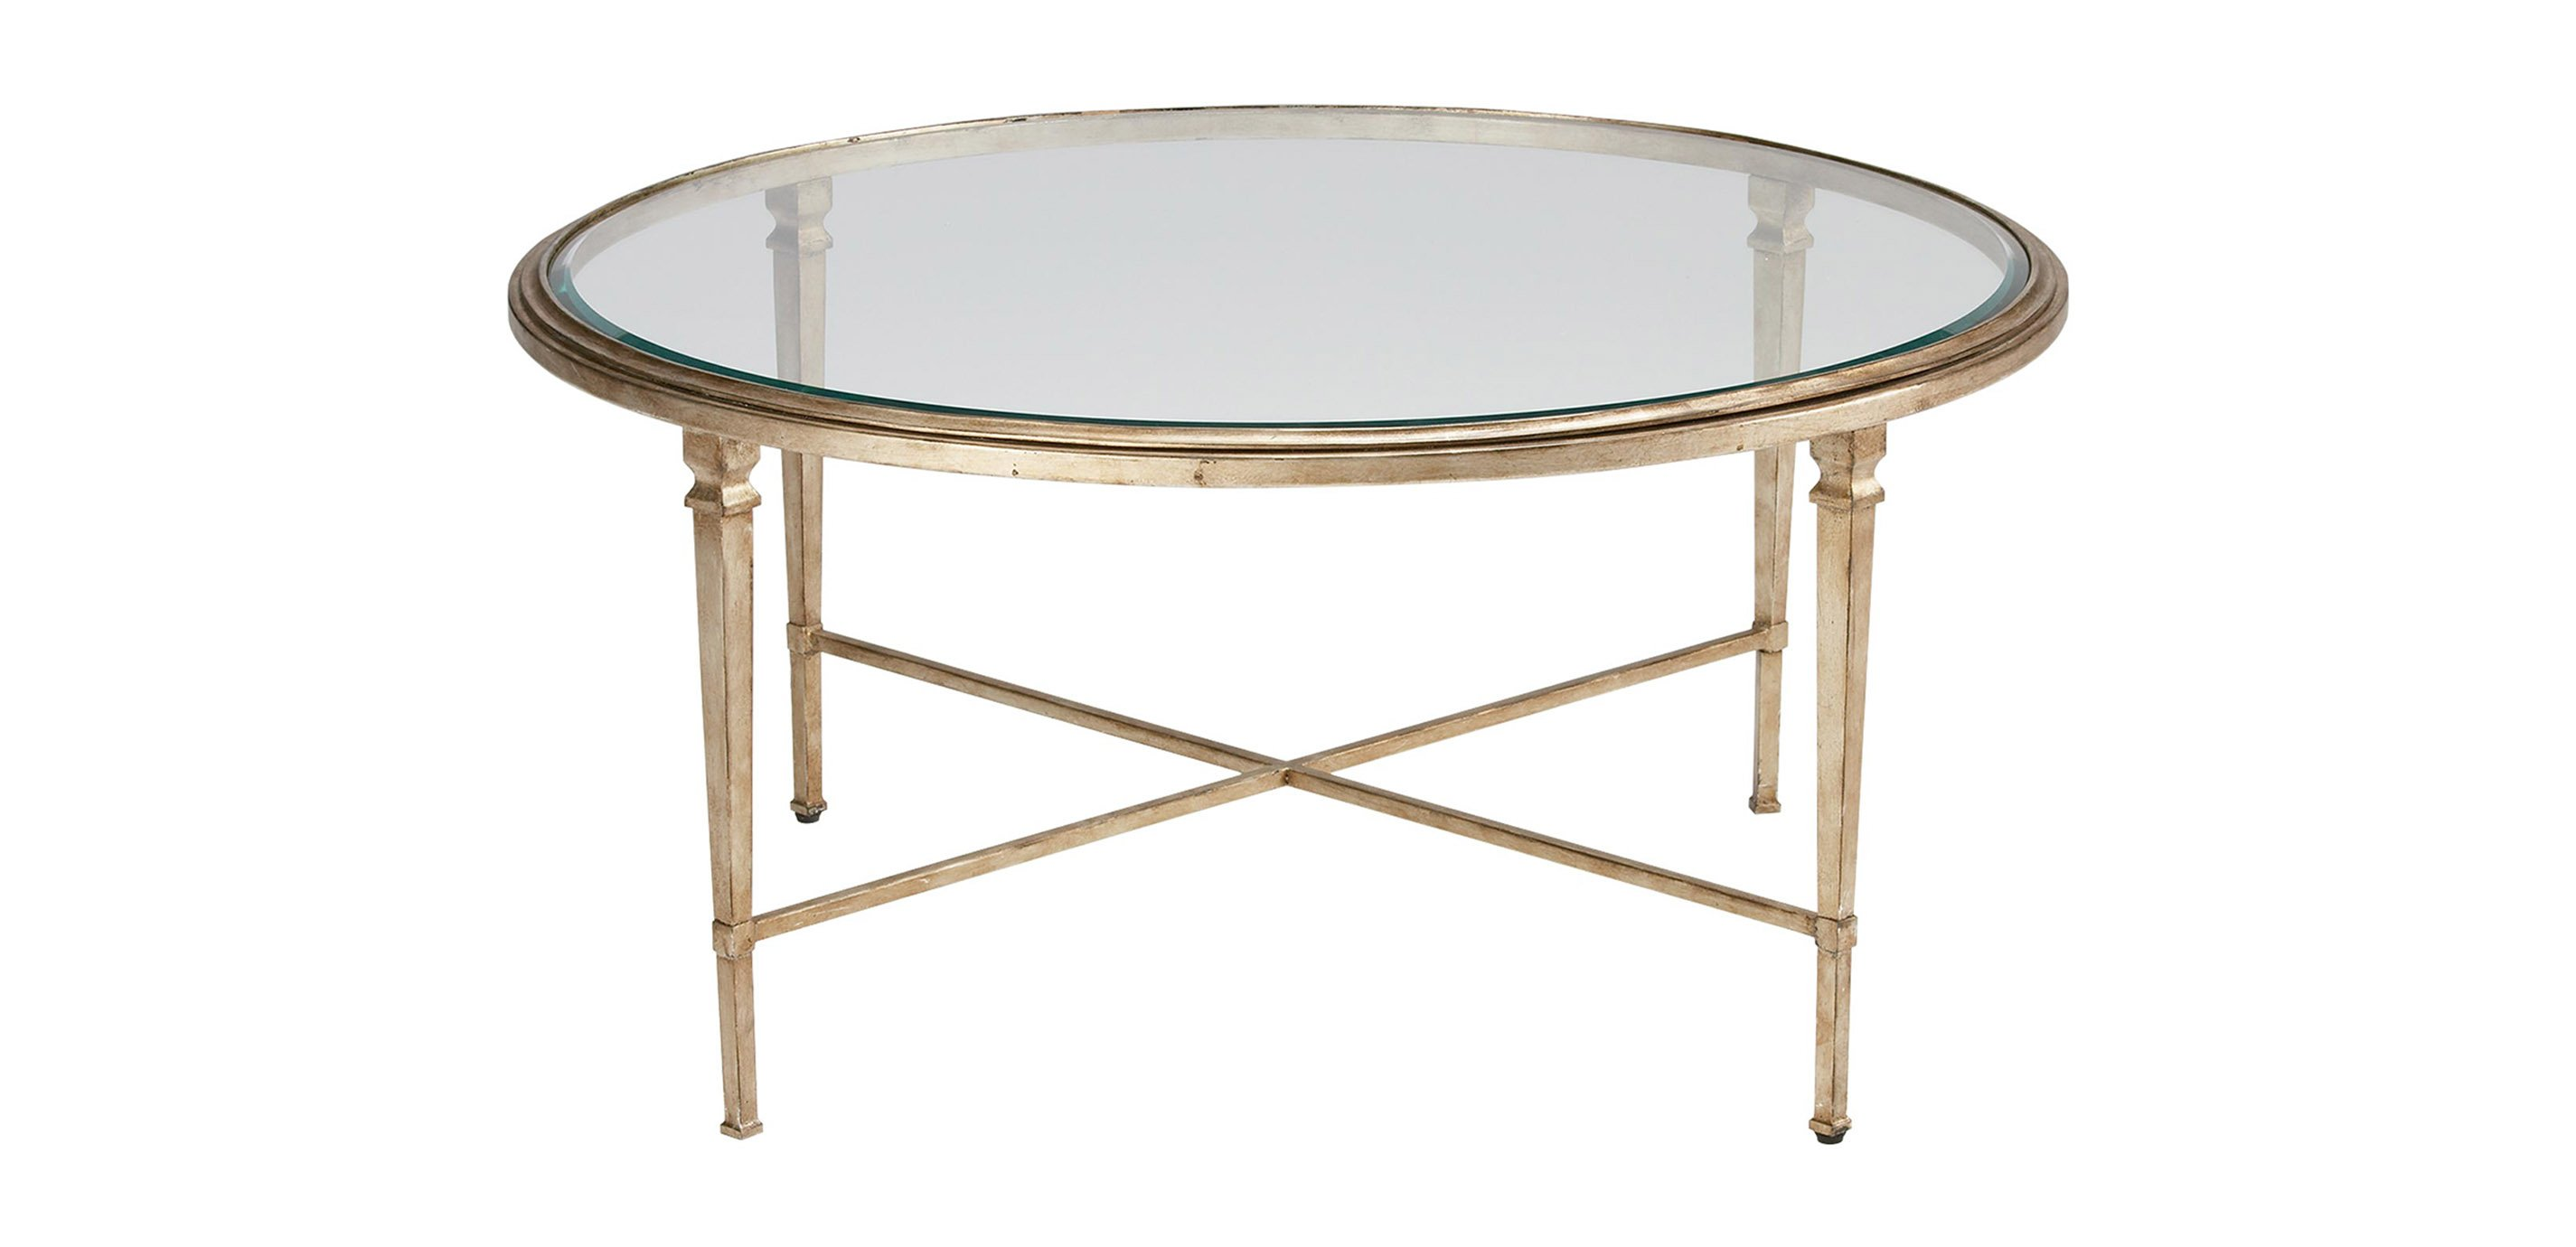 Heron round coffee table ethan allen Round coffee tables